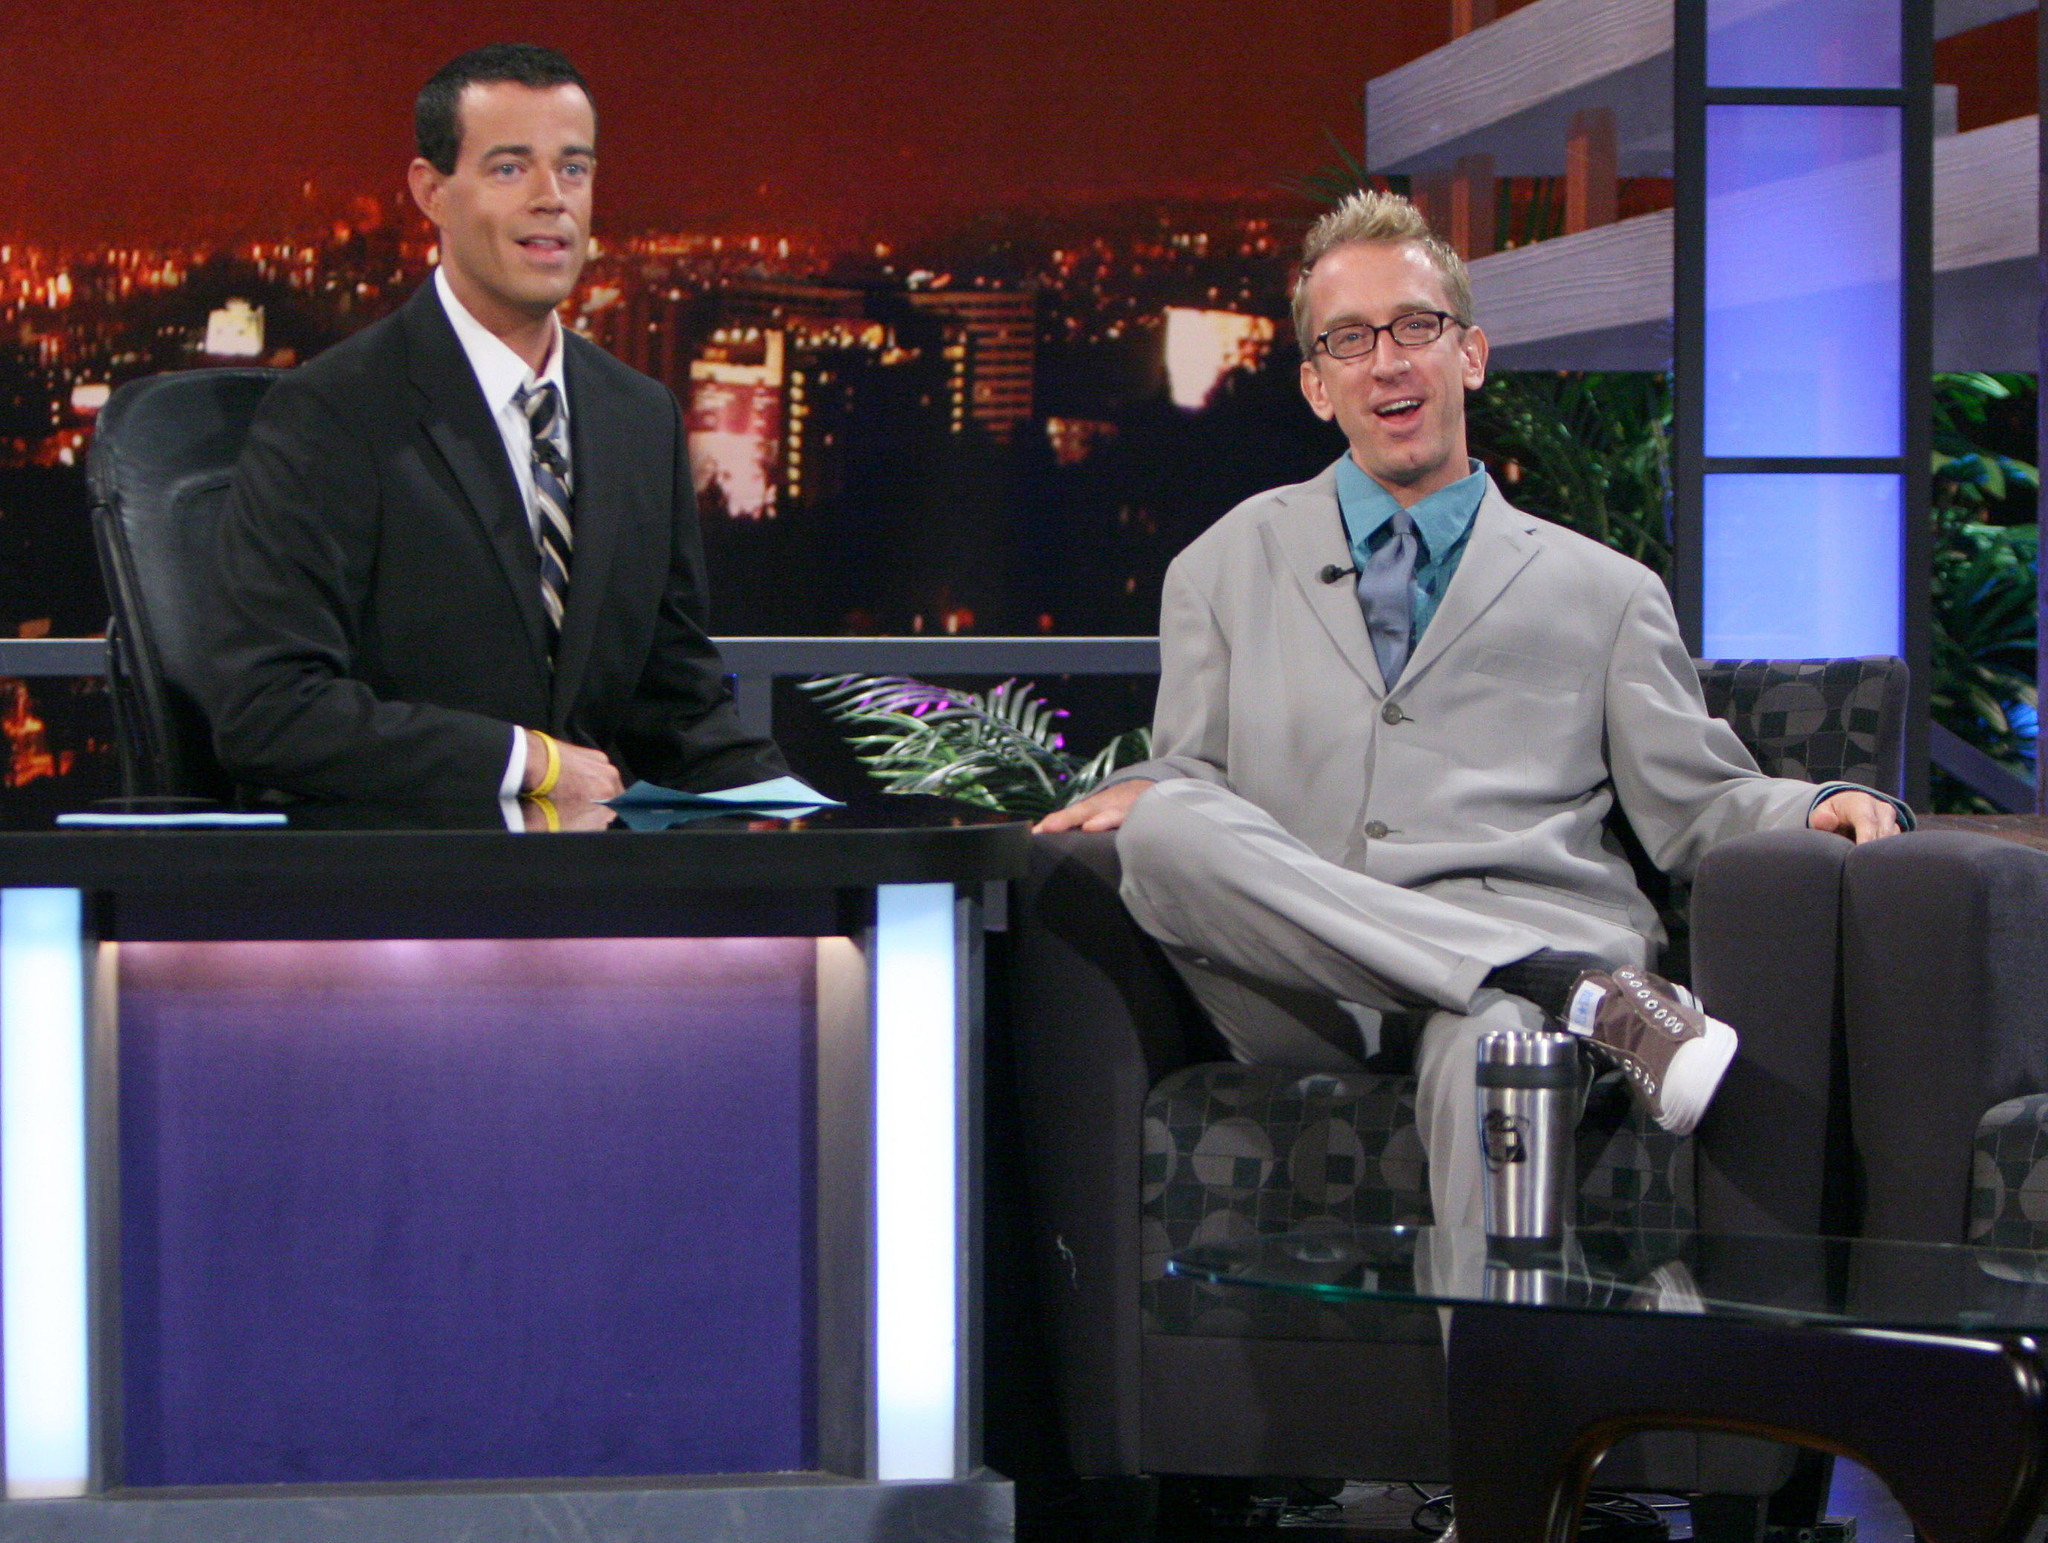 Andy dick on jimmy kimmel you